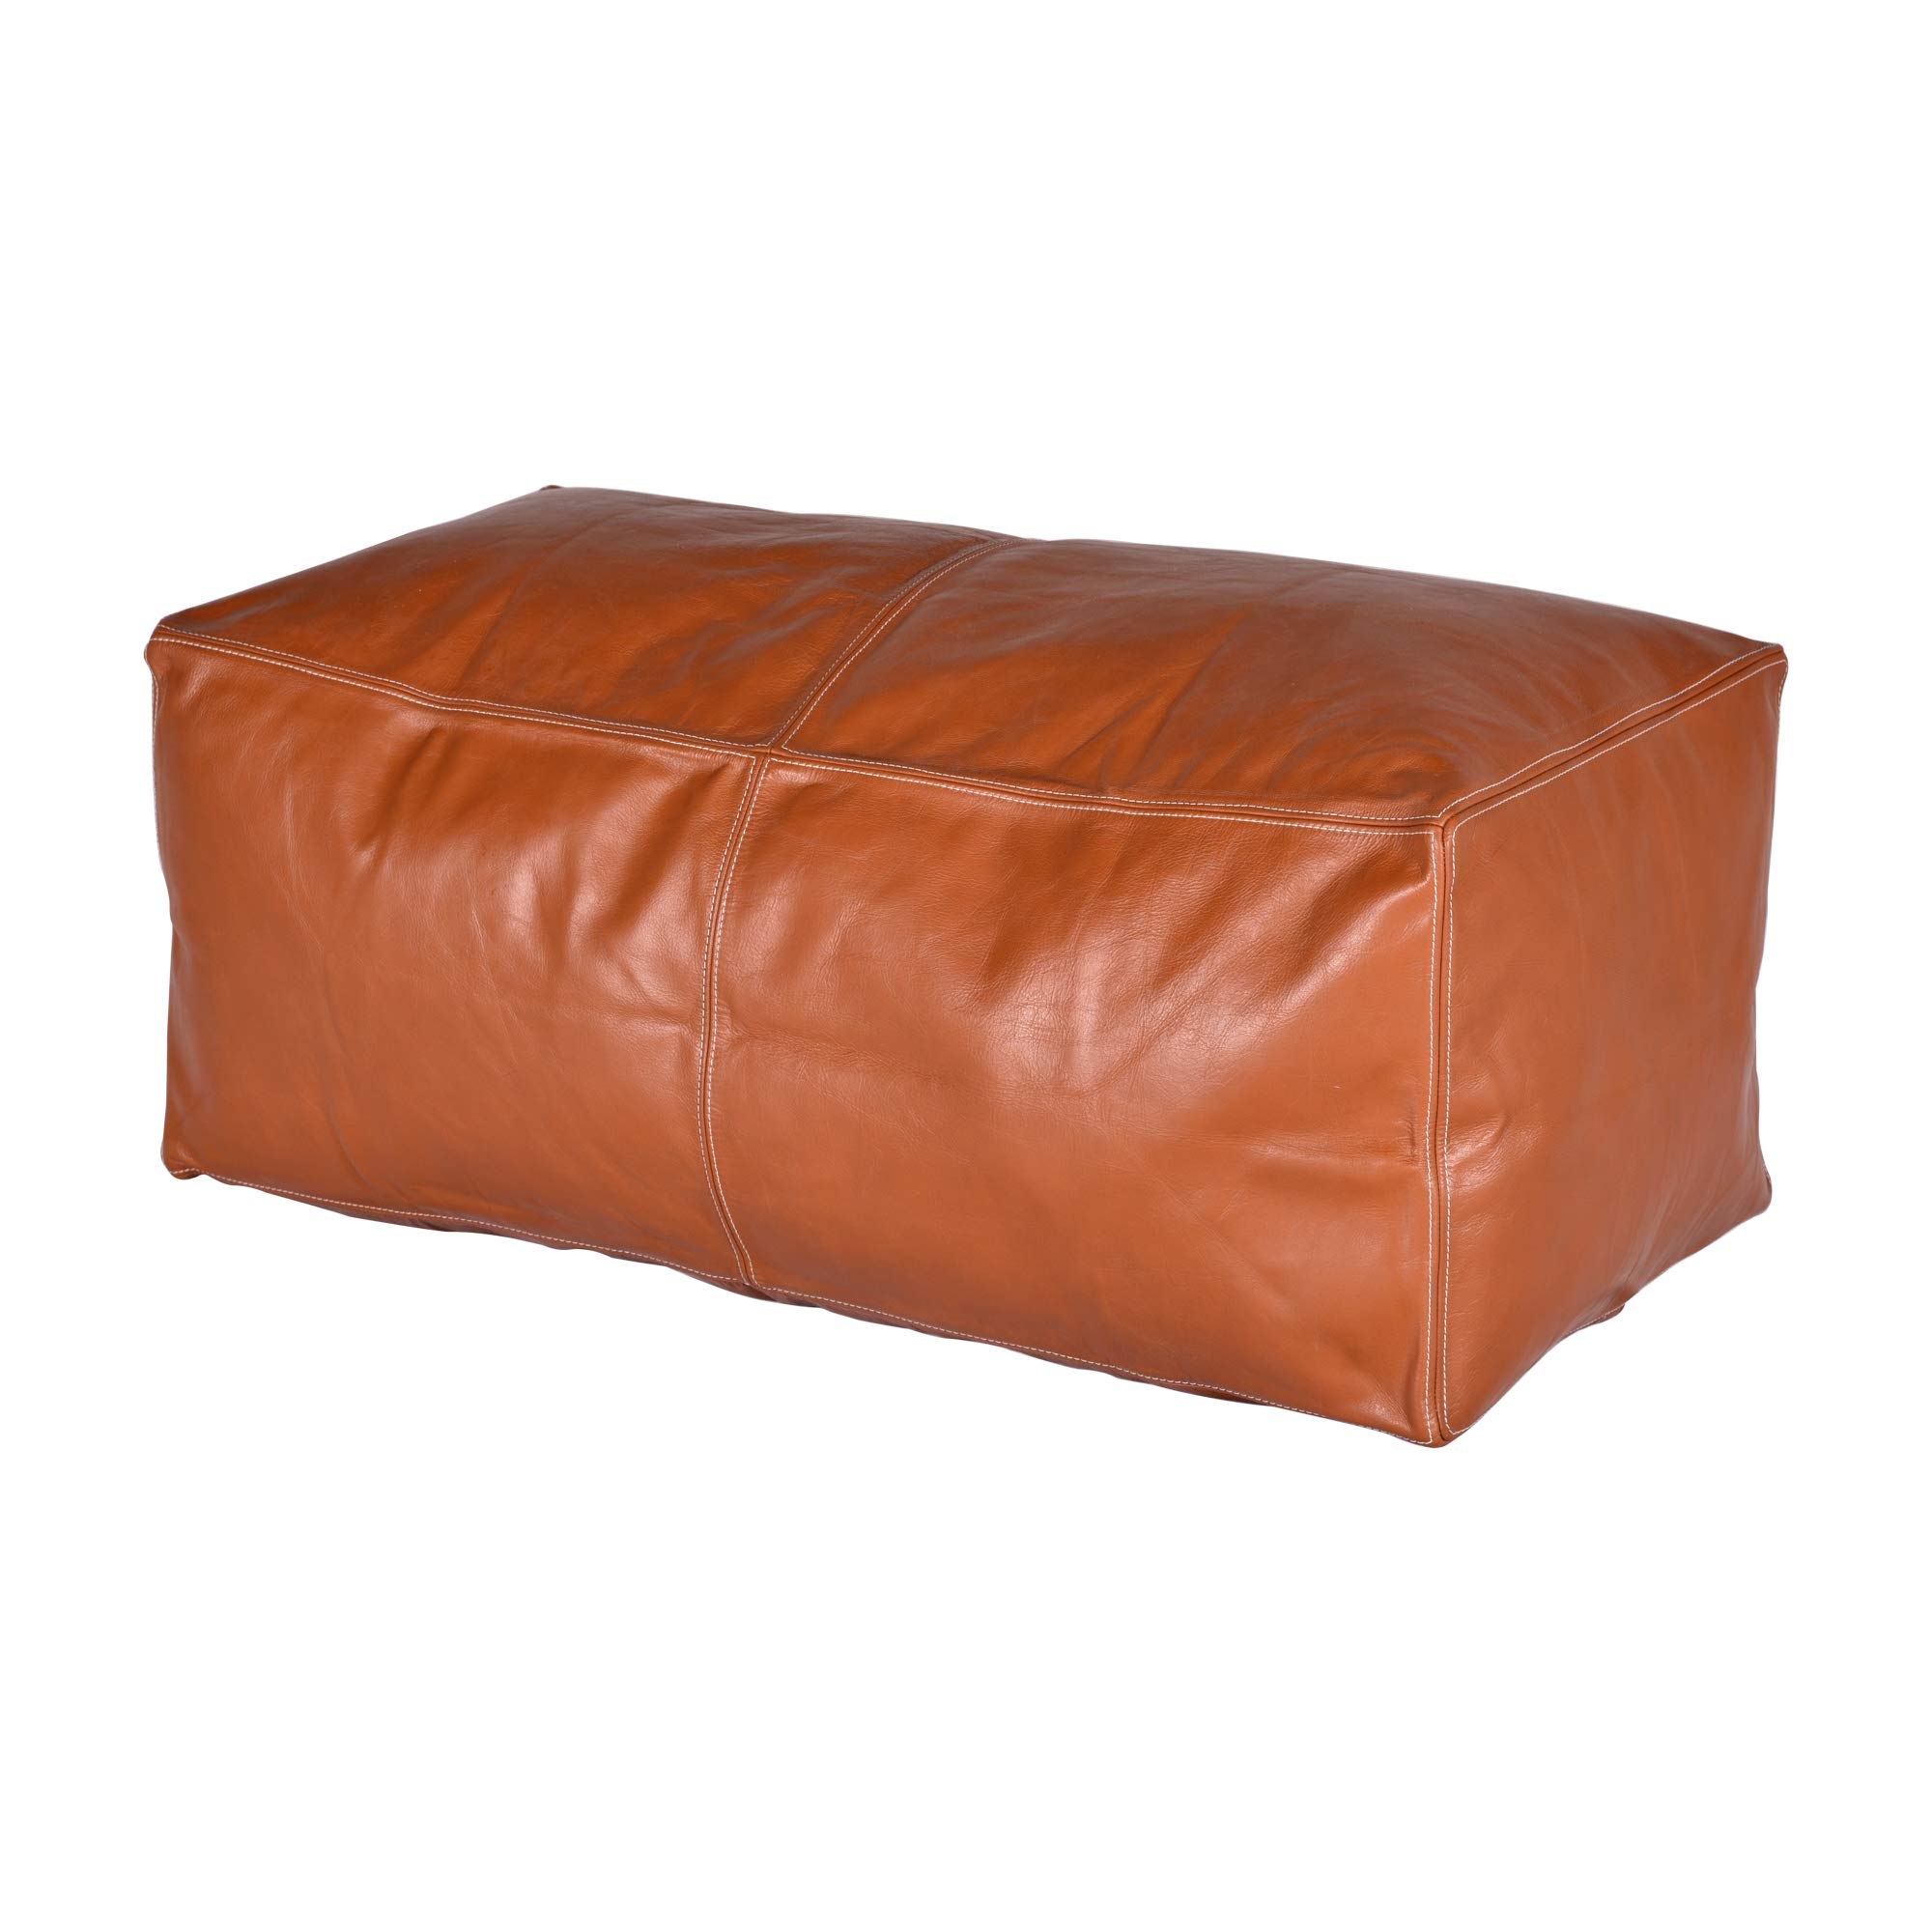 Magus Designs Tan Color Leather Rectangle Unfilled Morrocan Pouf Cover by Magus Designs